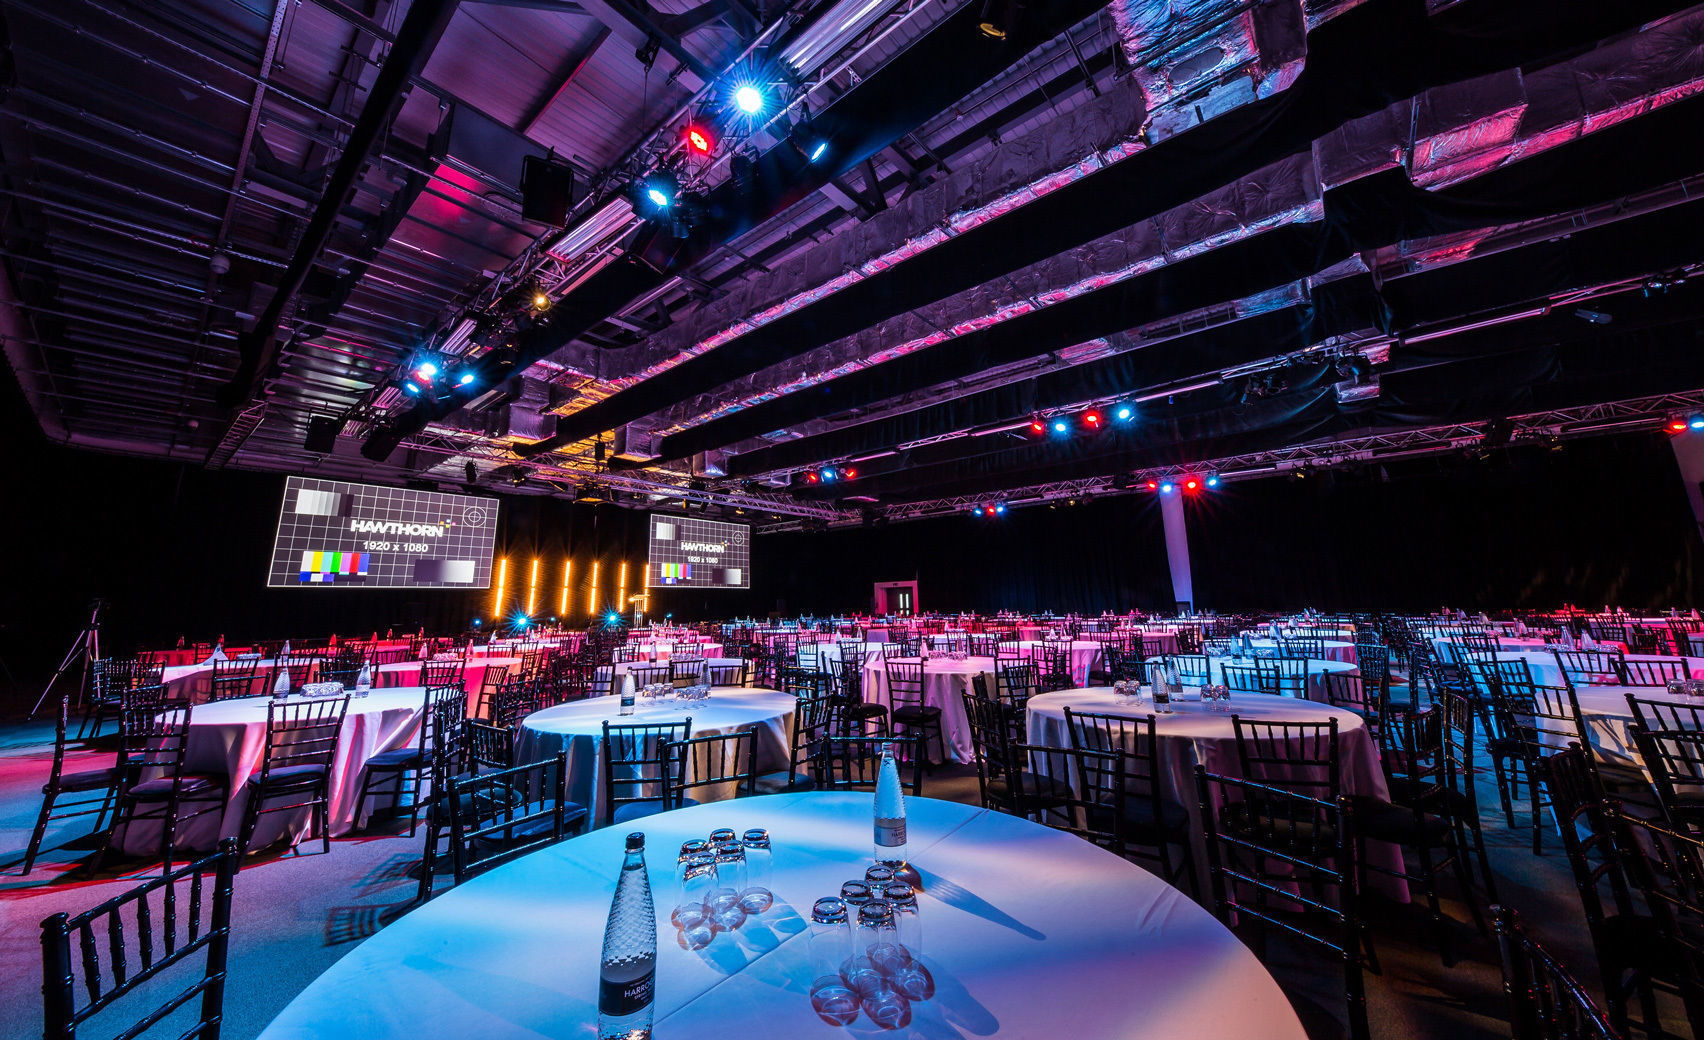 A large event Space with exposed piping and cabaret tables